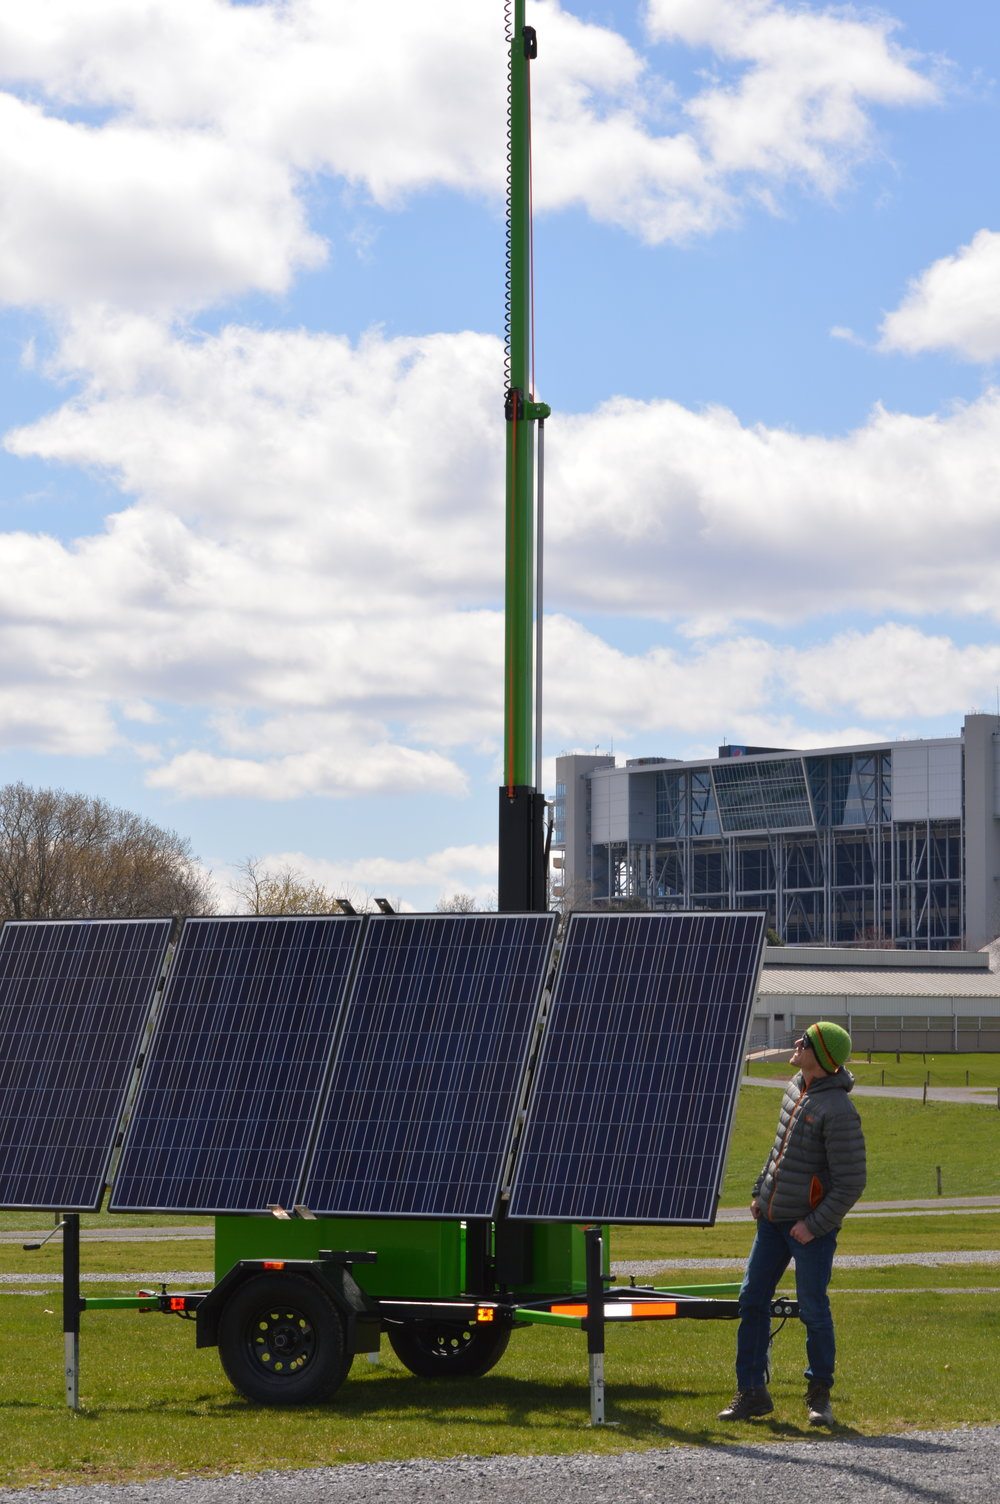 Dominight's Solar Hybrid LED Light Tower at Penn State University